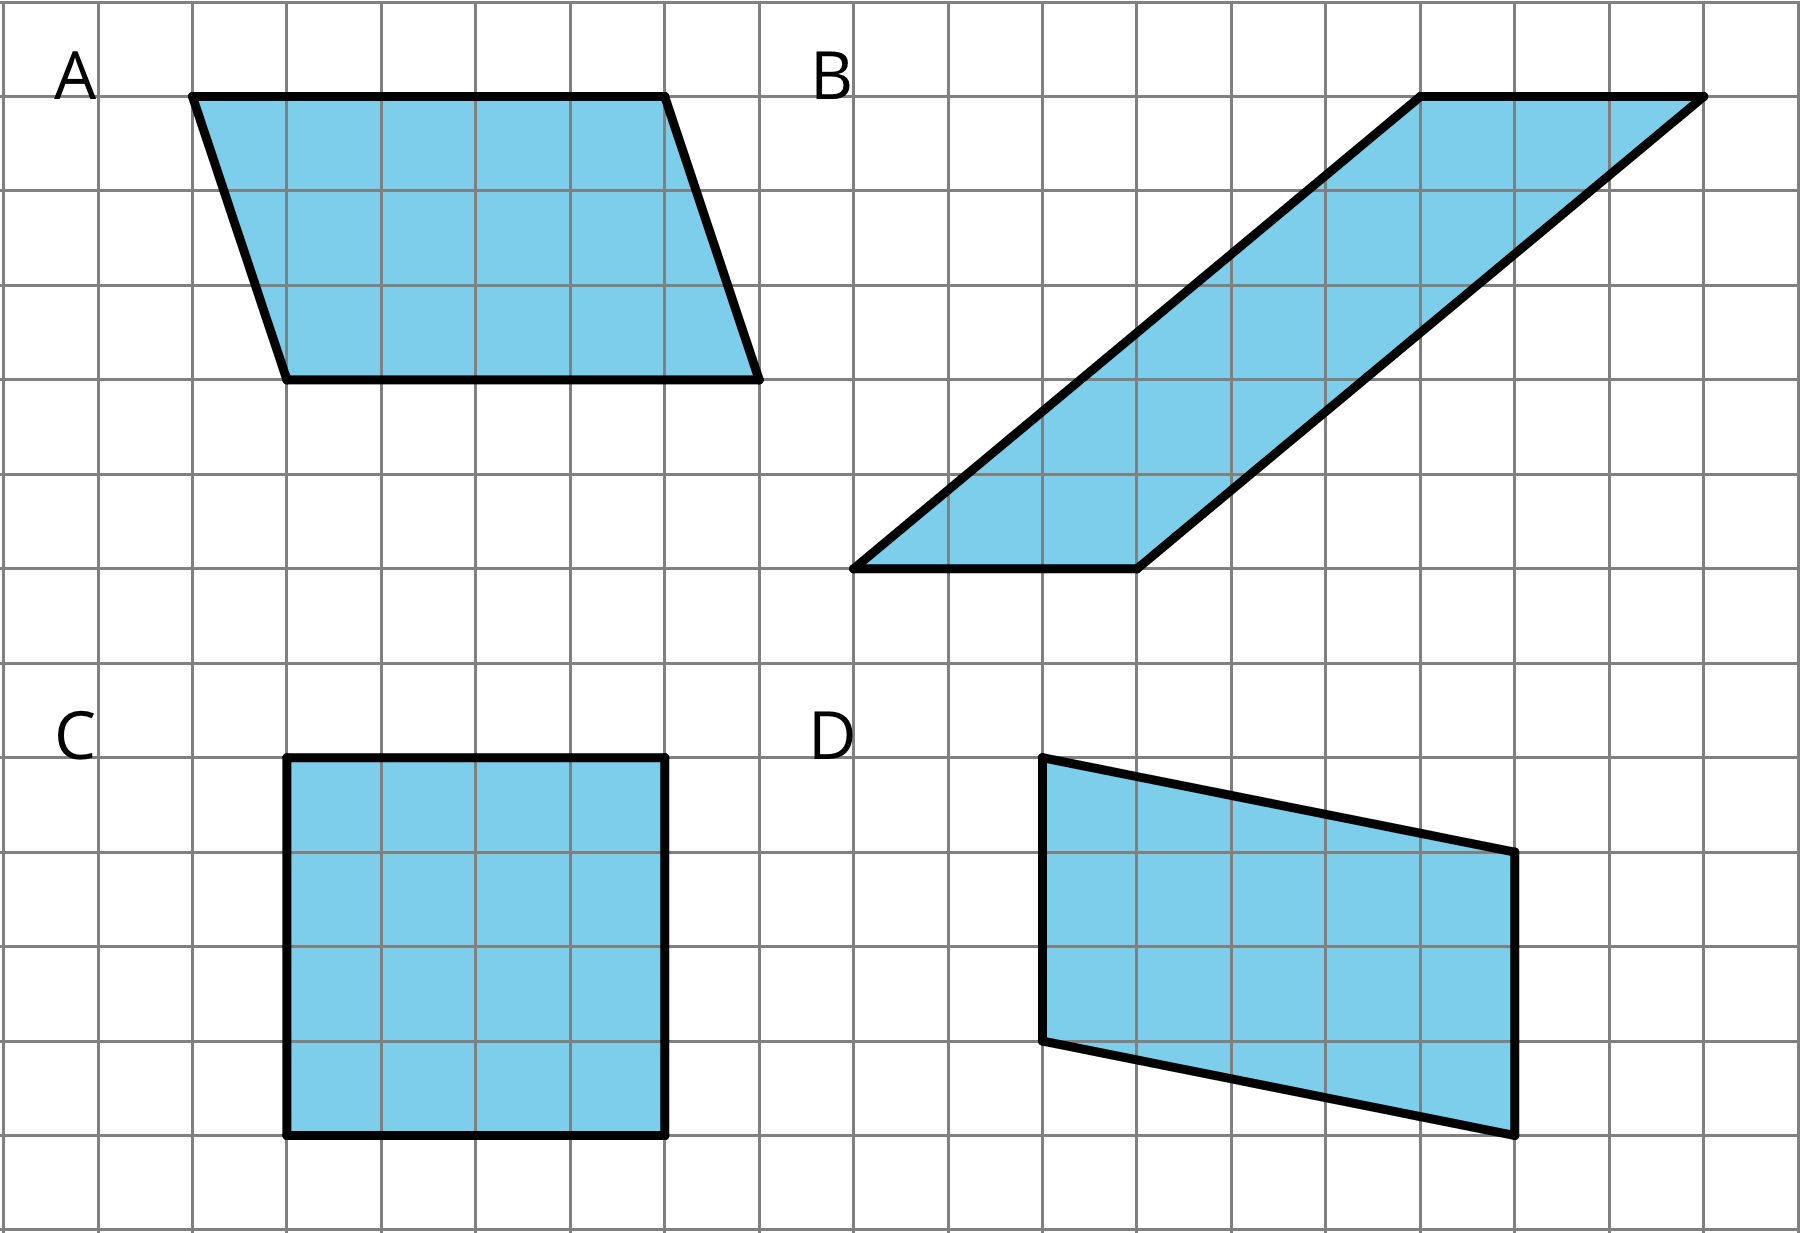 Four parallelograms, labeled A, B, C, and D. In figure A, the top and bottom are each 5 units long, and the sides descend 3 units and move right 1 unit. In figure B, the top and bottom are each 3 units long and the left and right sides ascend 5 units while moving right 6 units. Figure C is a square of 4 units on each side. In figure D, the left and right sides ascend 3 units, and the top and bottom descend 1 unit as they move right 5 units.